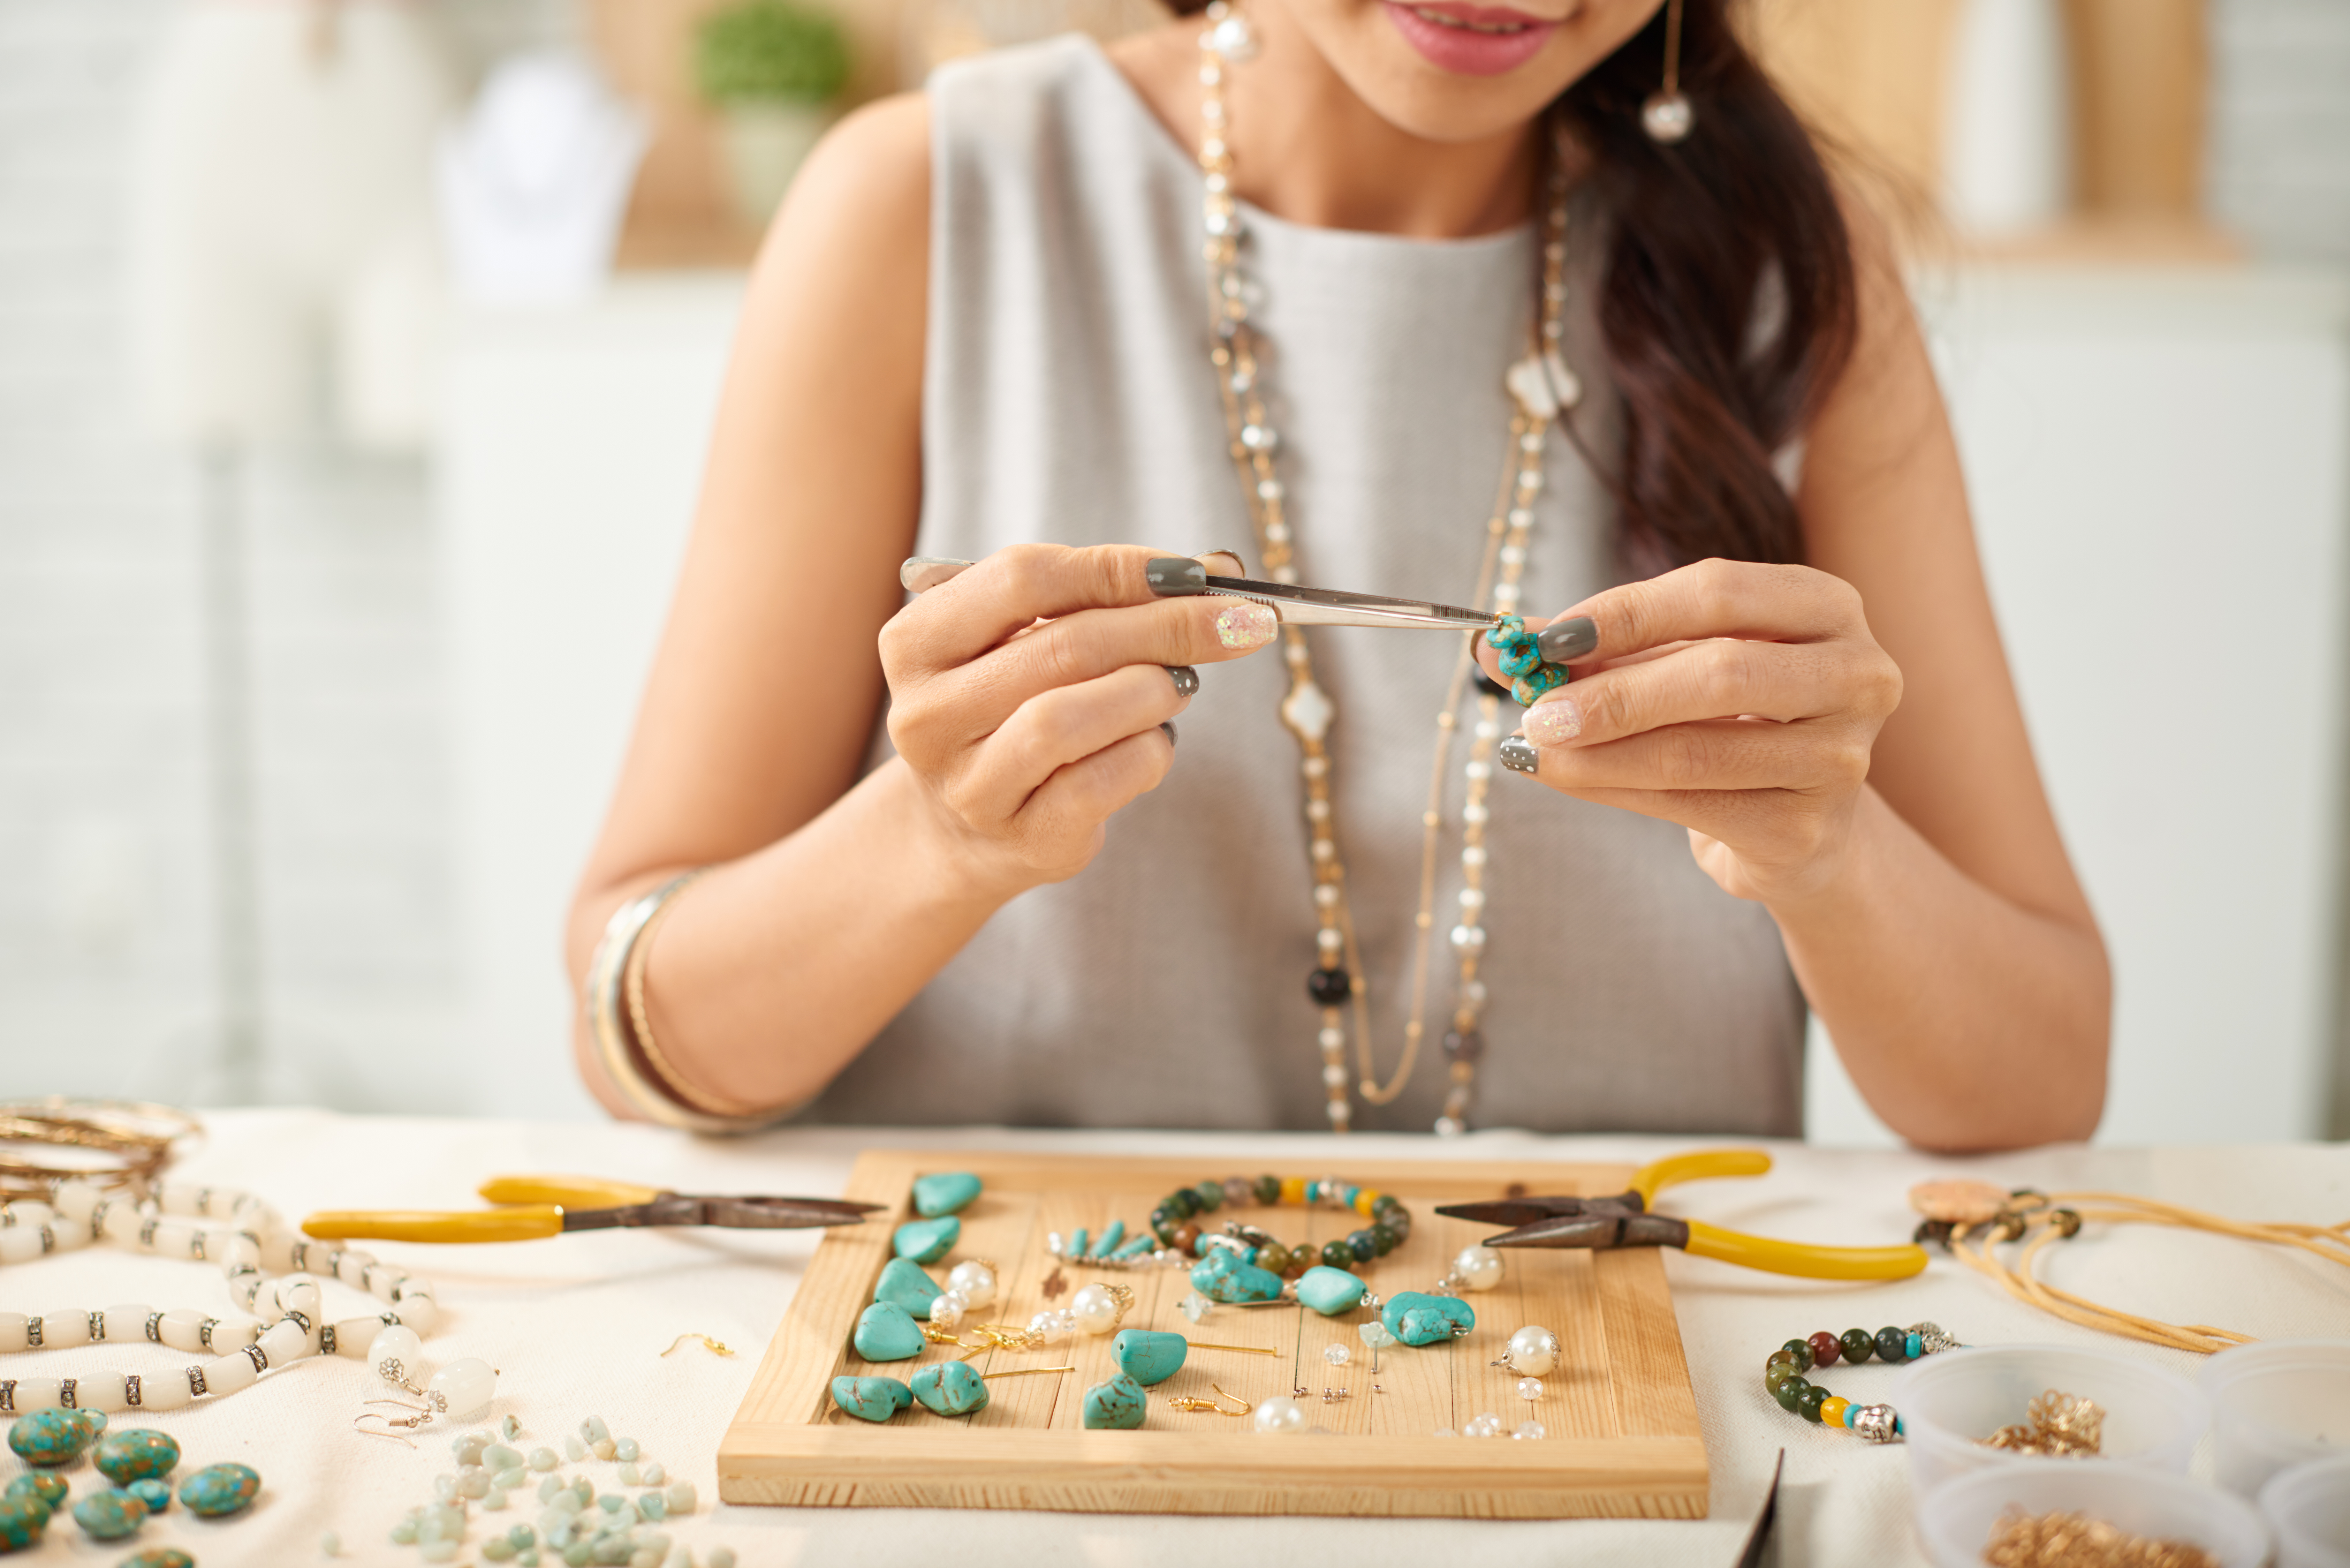 How Crafts Are Helping People with Chronic Illness Heal